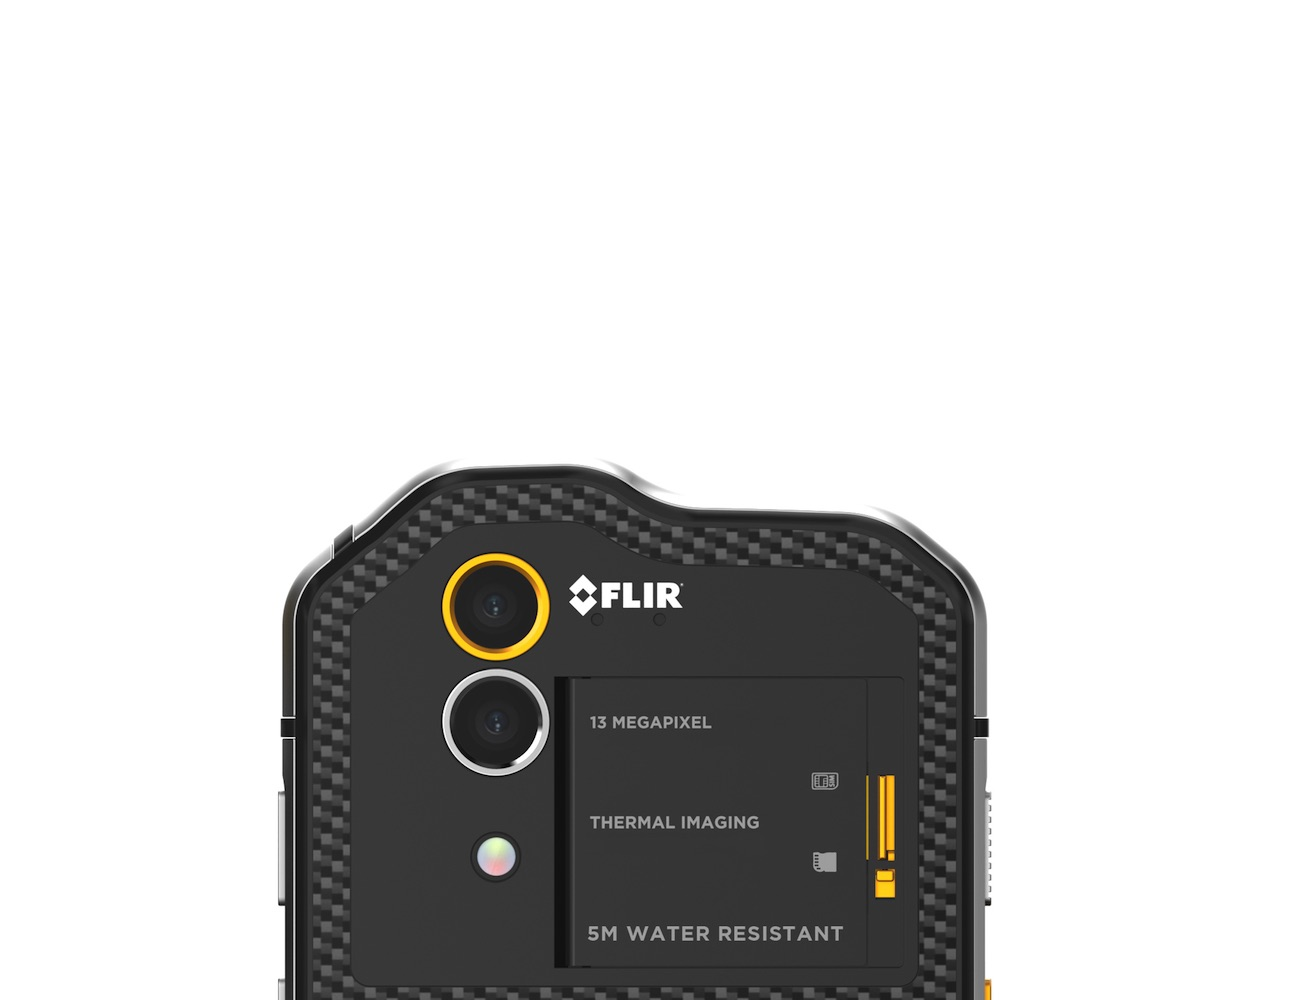 Cat S60 – Unique Smartphone With Integrated Thermal Camera